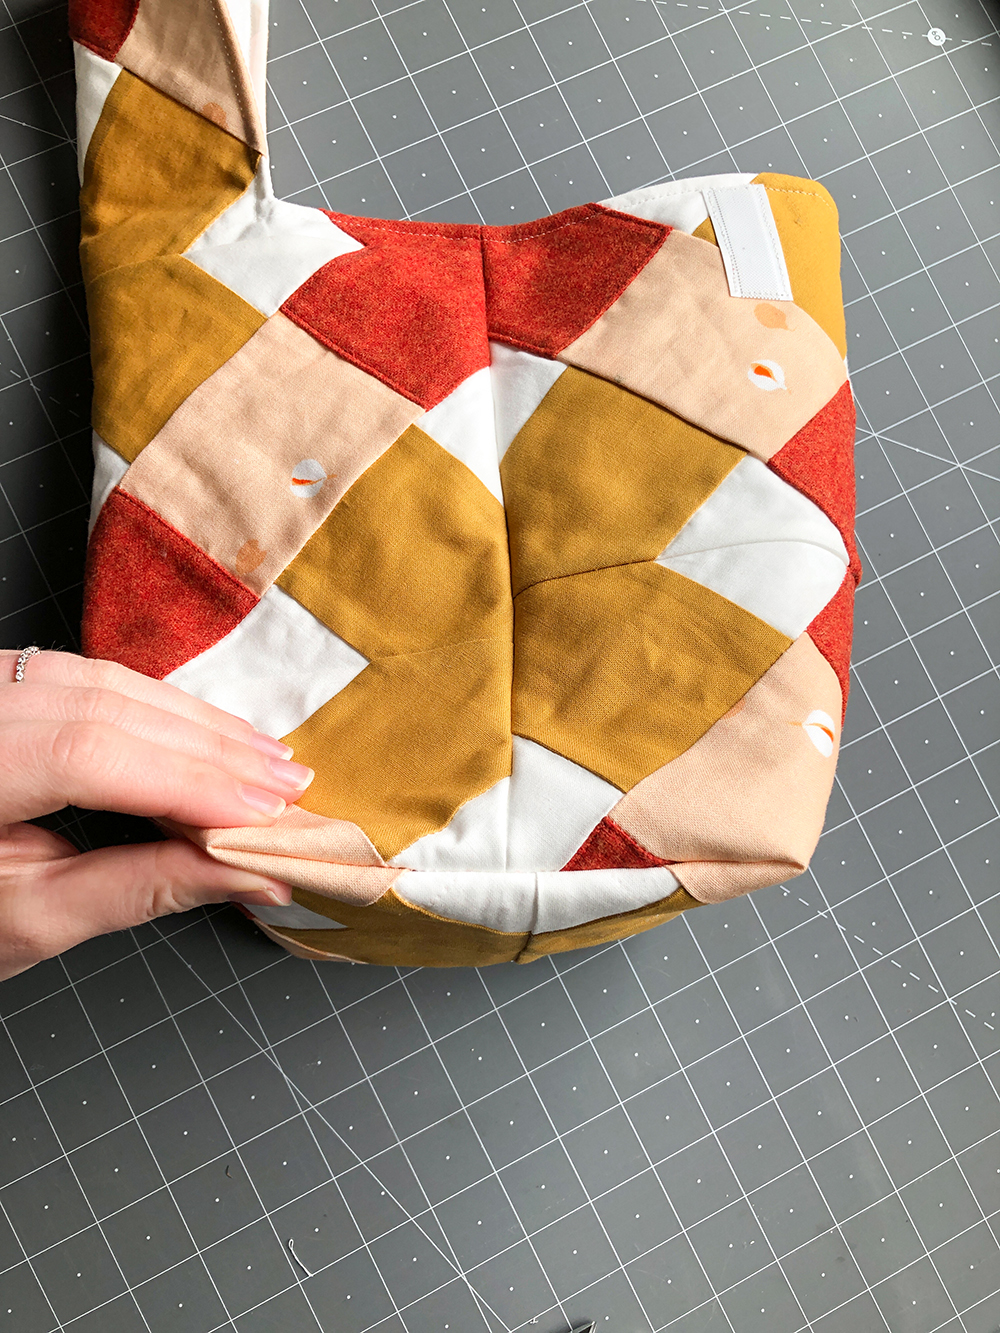 A step by step photo tutorial with all the information you need to make a quilted lunch bag with the Suzy Quilts Kris Kross pattern. Read about materials you'll need, how to use the Kris Kross pattern, and see every step for making your own quilted lunch bag. suzyquilts.com #quilting #sewingdiy